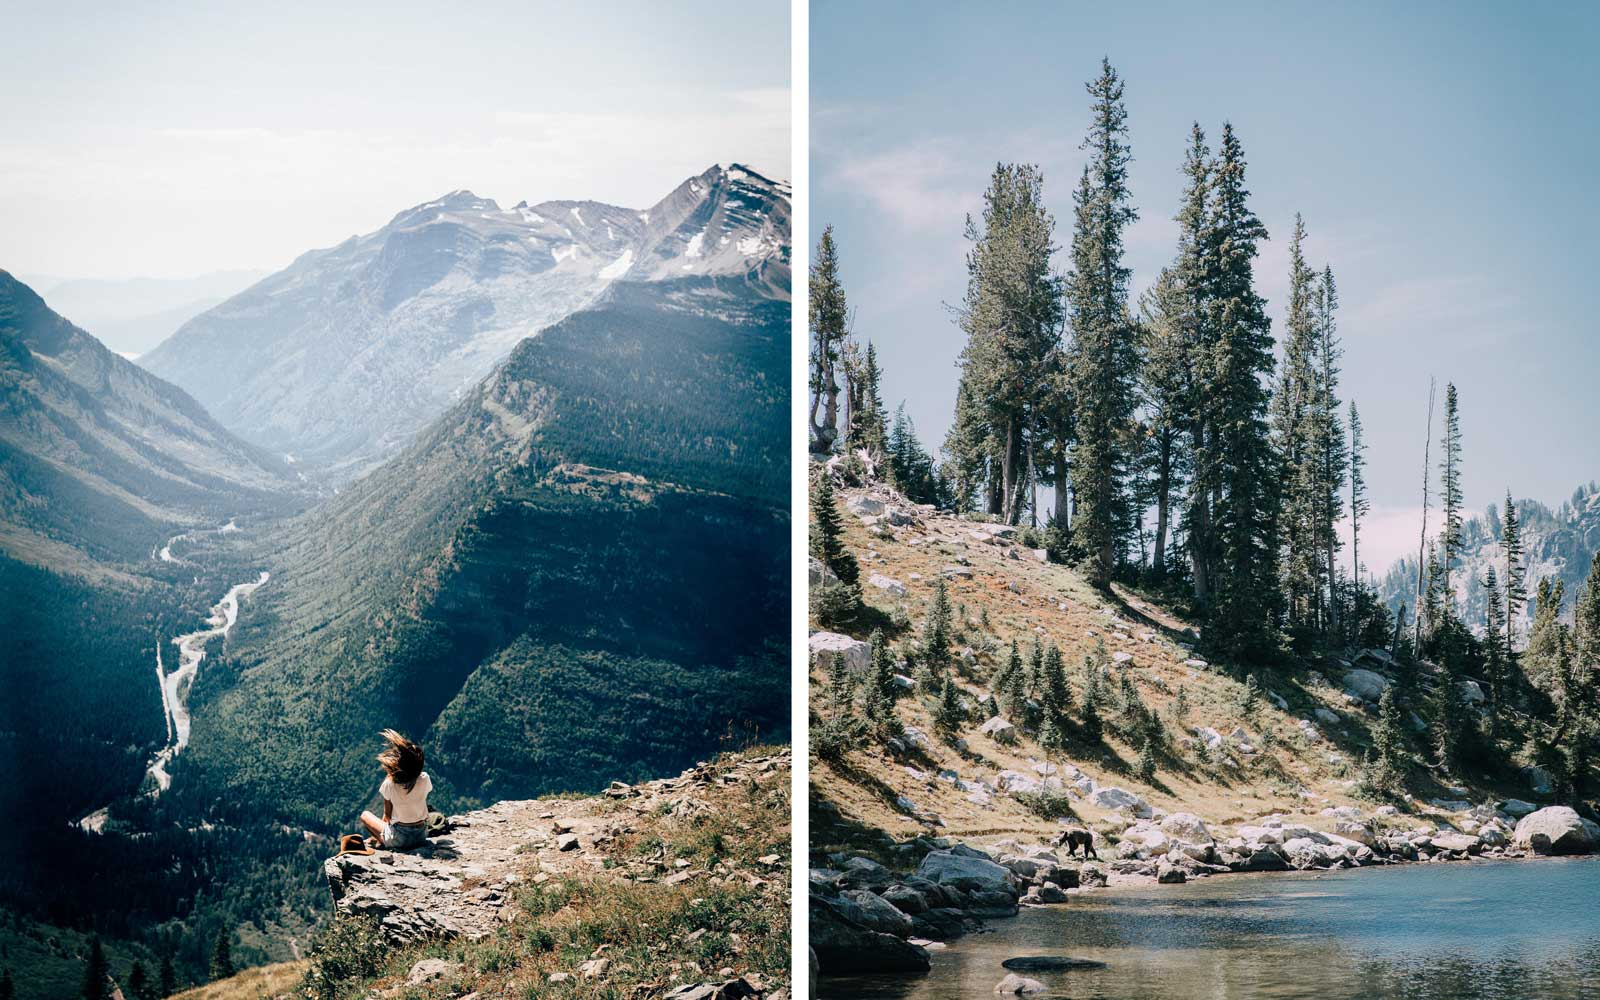 Glacier National Park (left) and Grand Teton National Park (right)